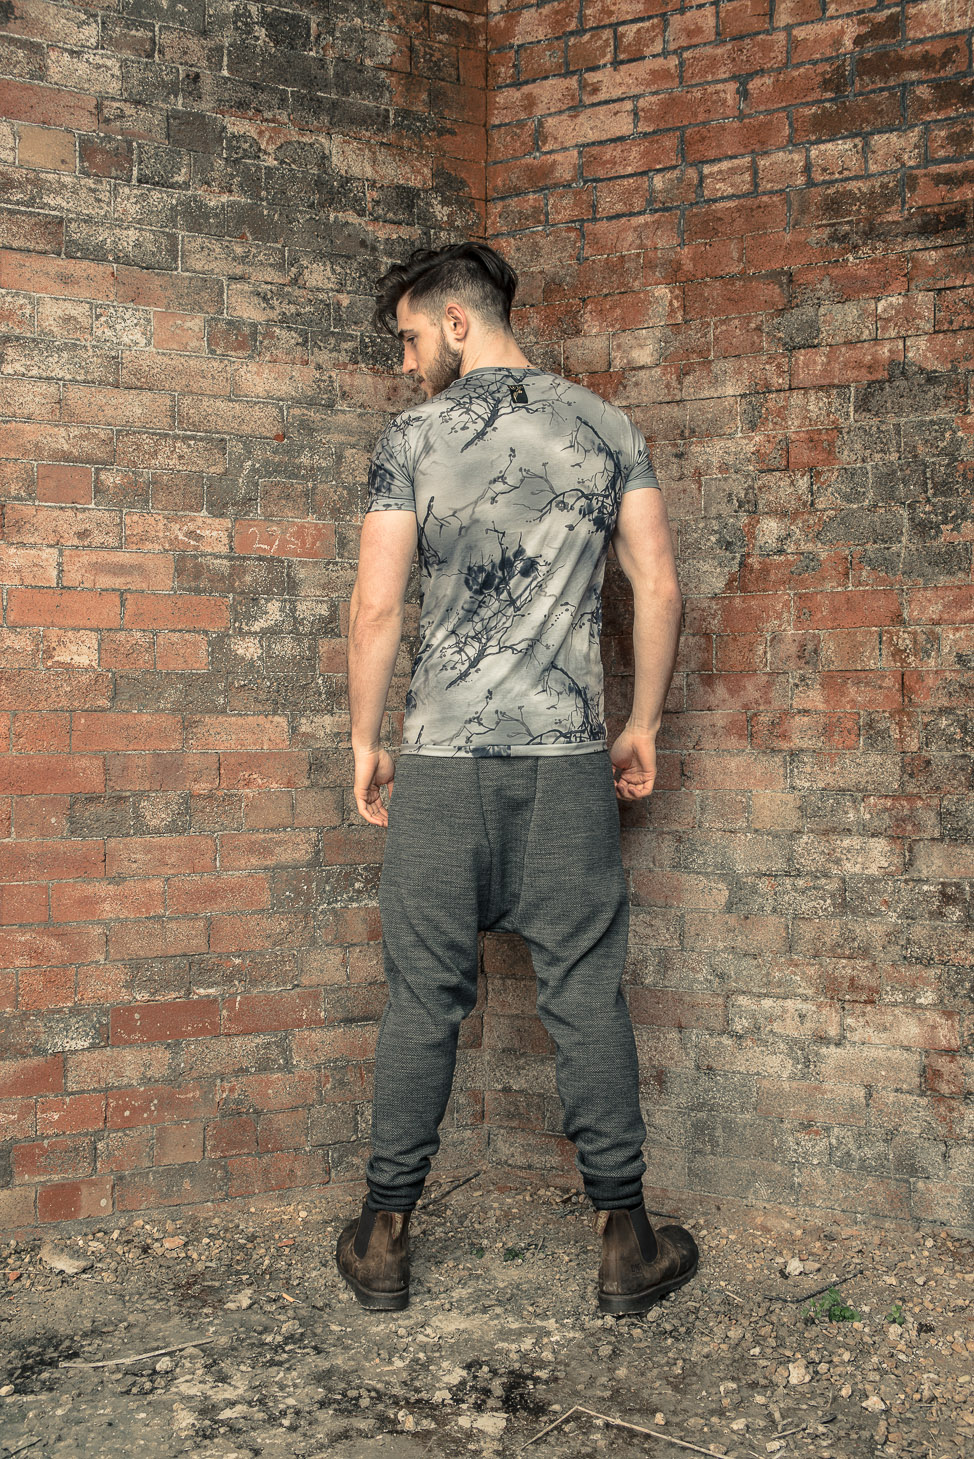 zaramia-ava-zaramiaava-leeds-fashion-designer-ethical-sustainable-tailored-minimalist-fitted-versatile-drape-koji-grey-tshirt-top-hareem-trousers-black-grey-texture-styling-menswear-model-22